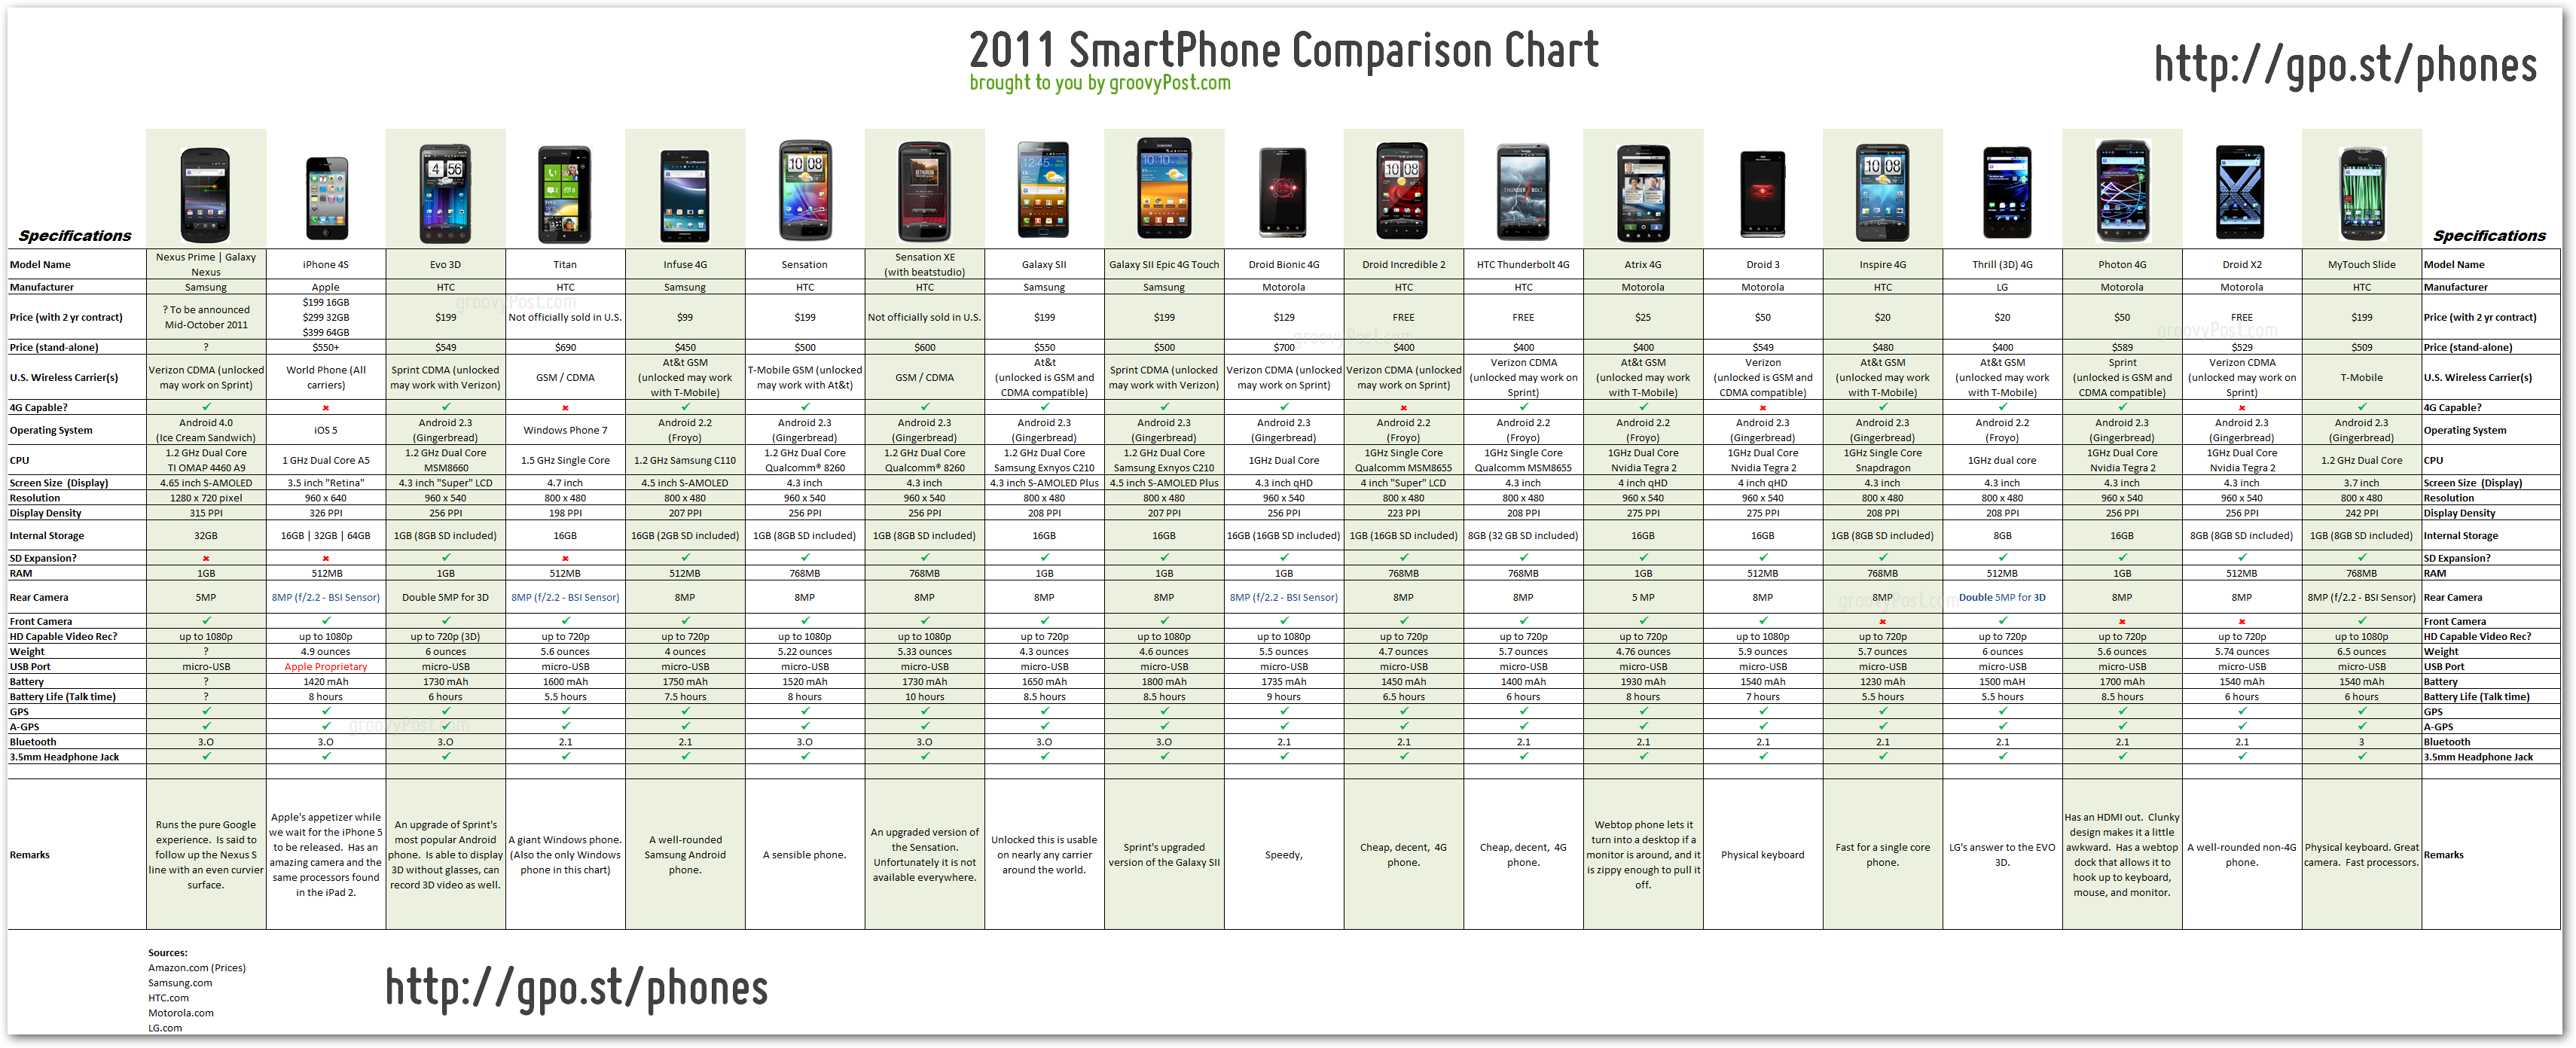 2011 tablet and smartphone comparison chart be your own boss